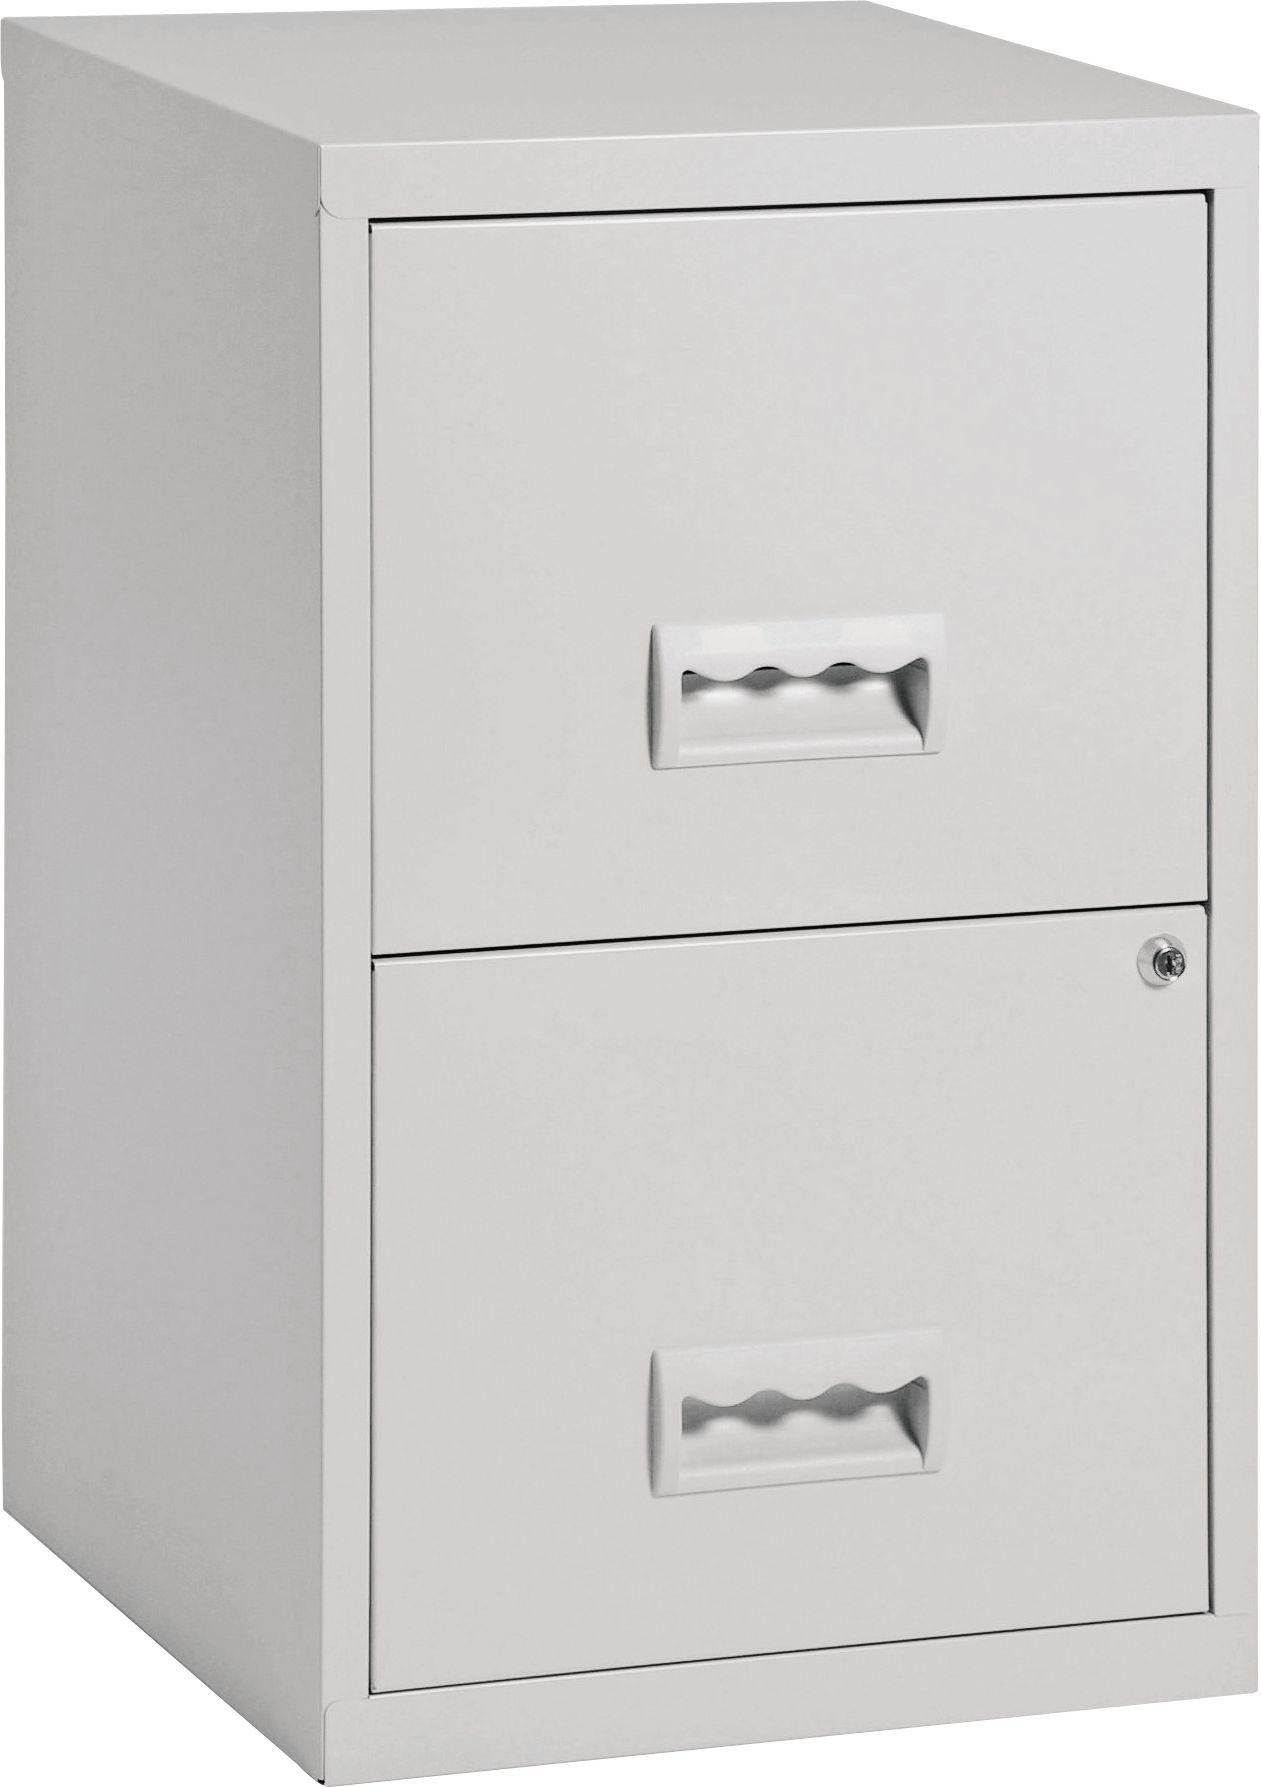 pierre henry 2 drawer filing cabinet grey